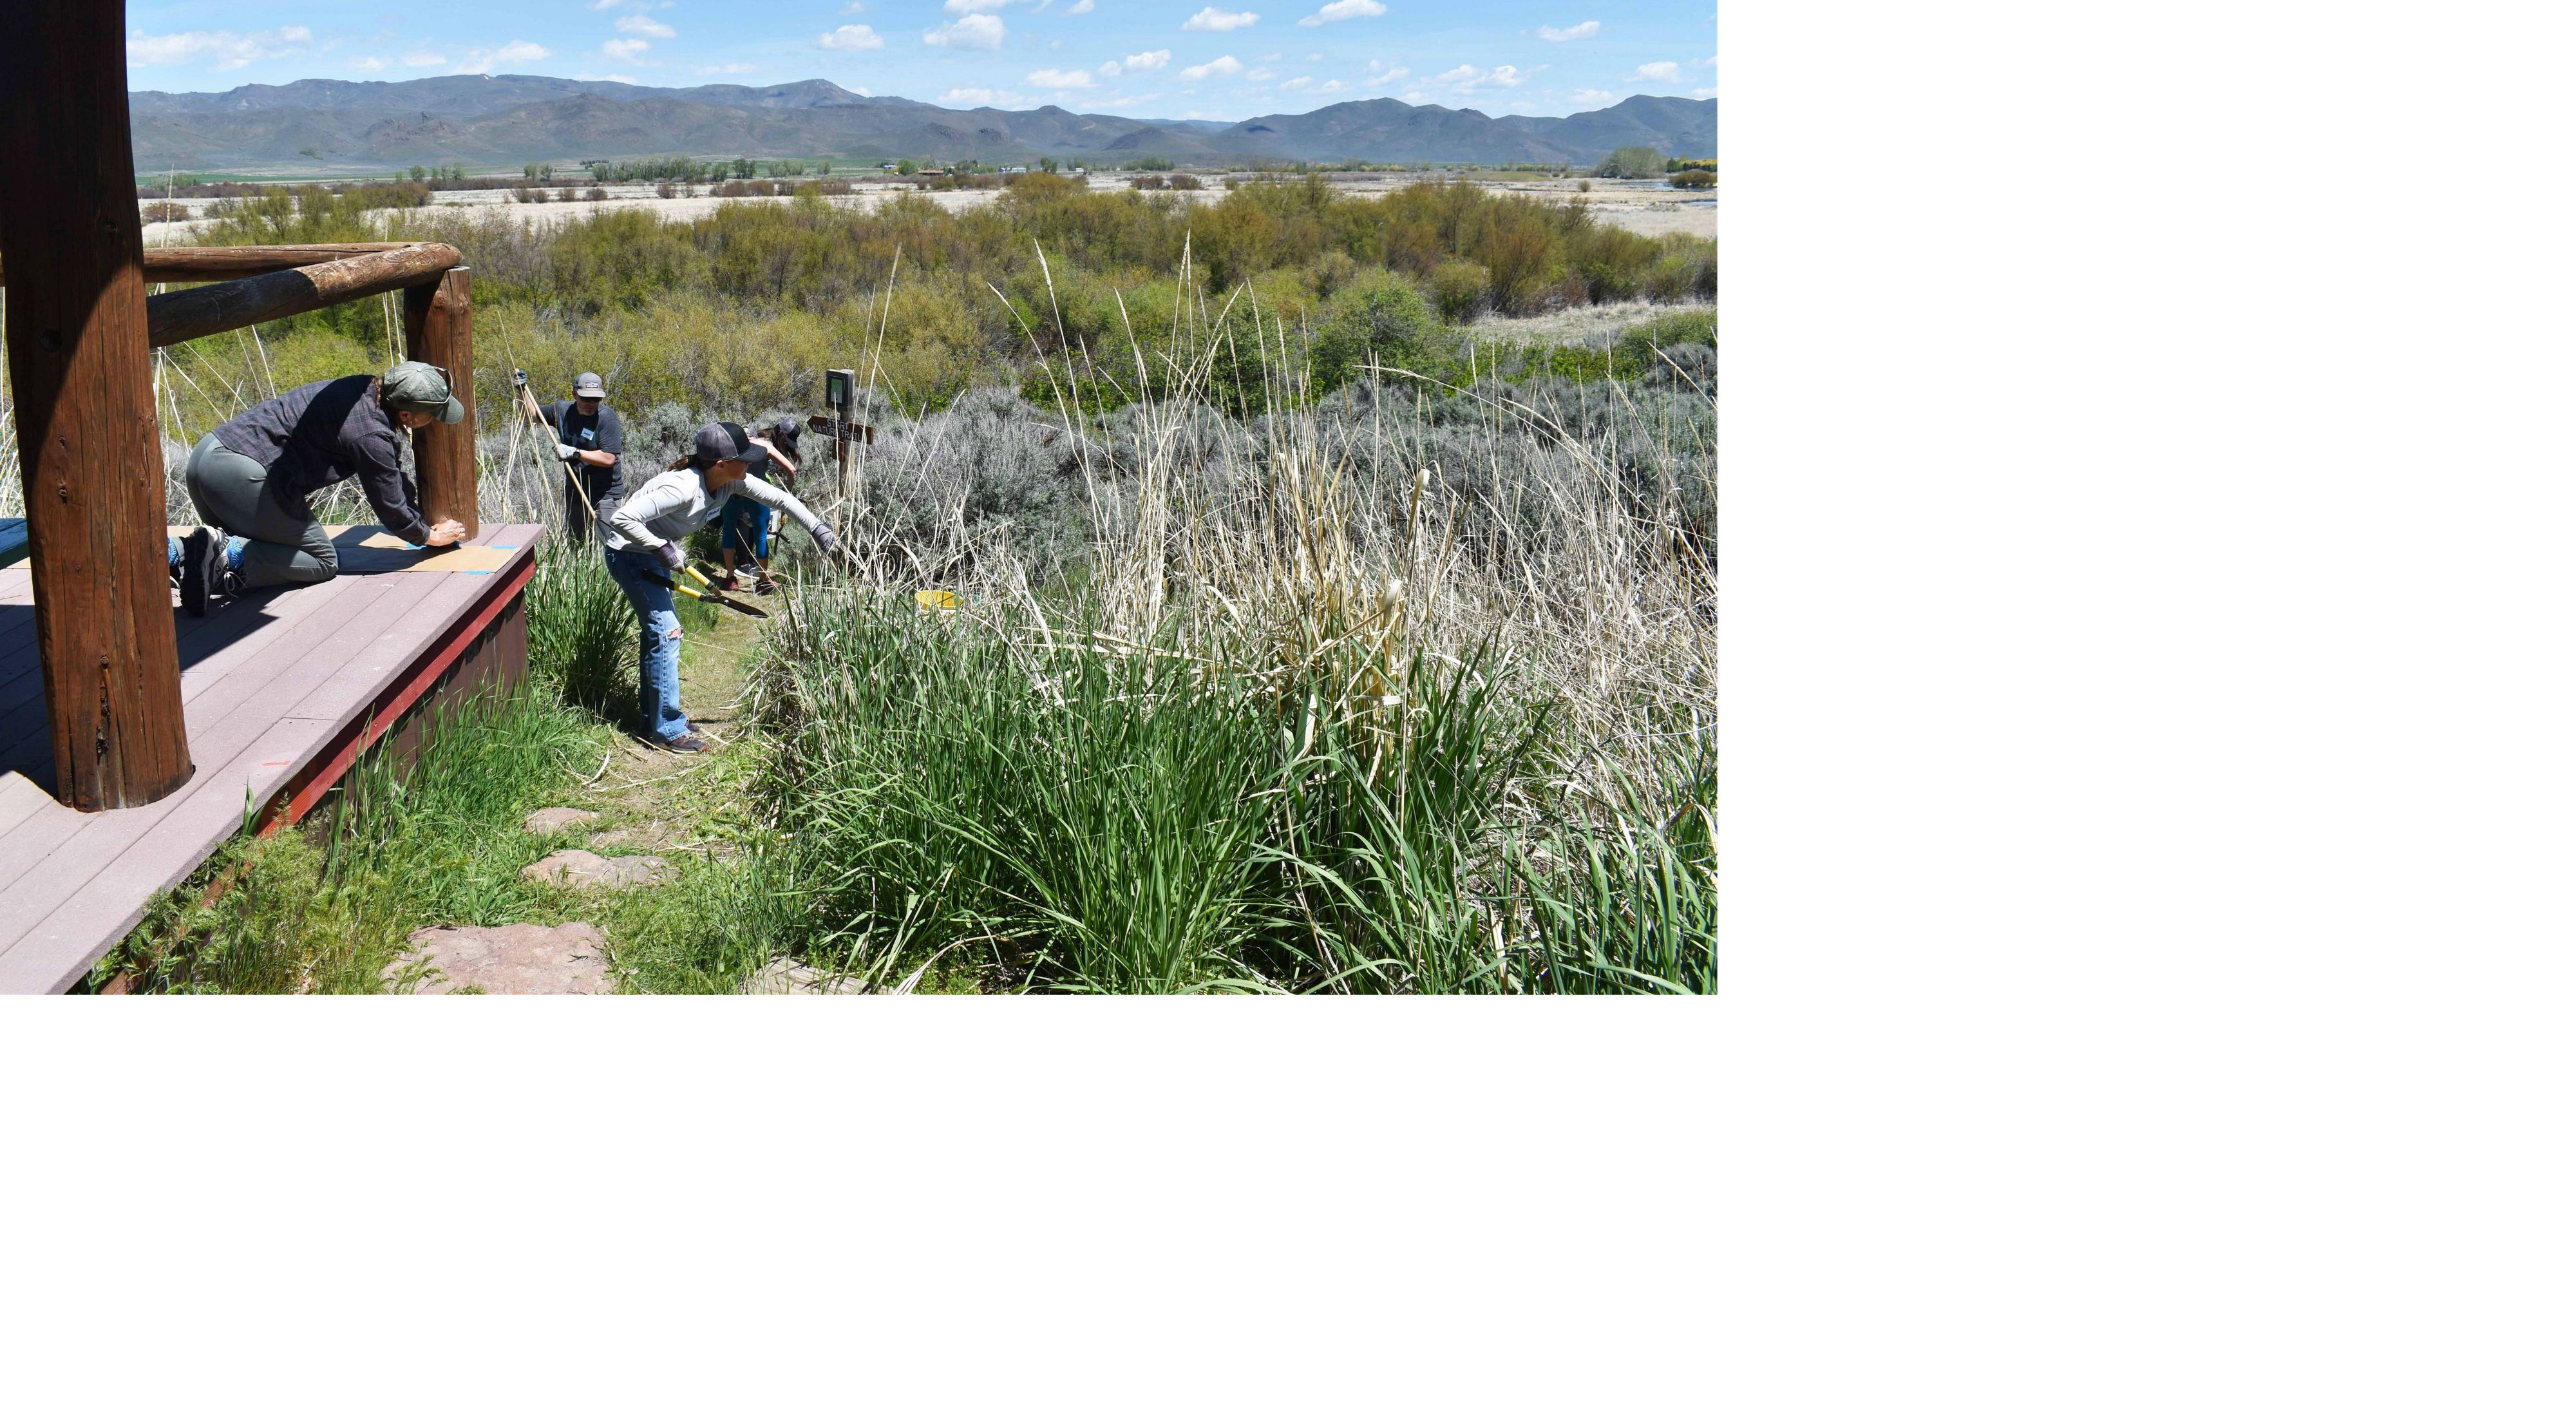 Volunteers spend the day preparing Silver Creek Preserve for opening day, 2019.